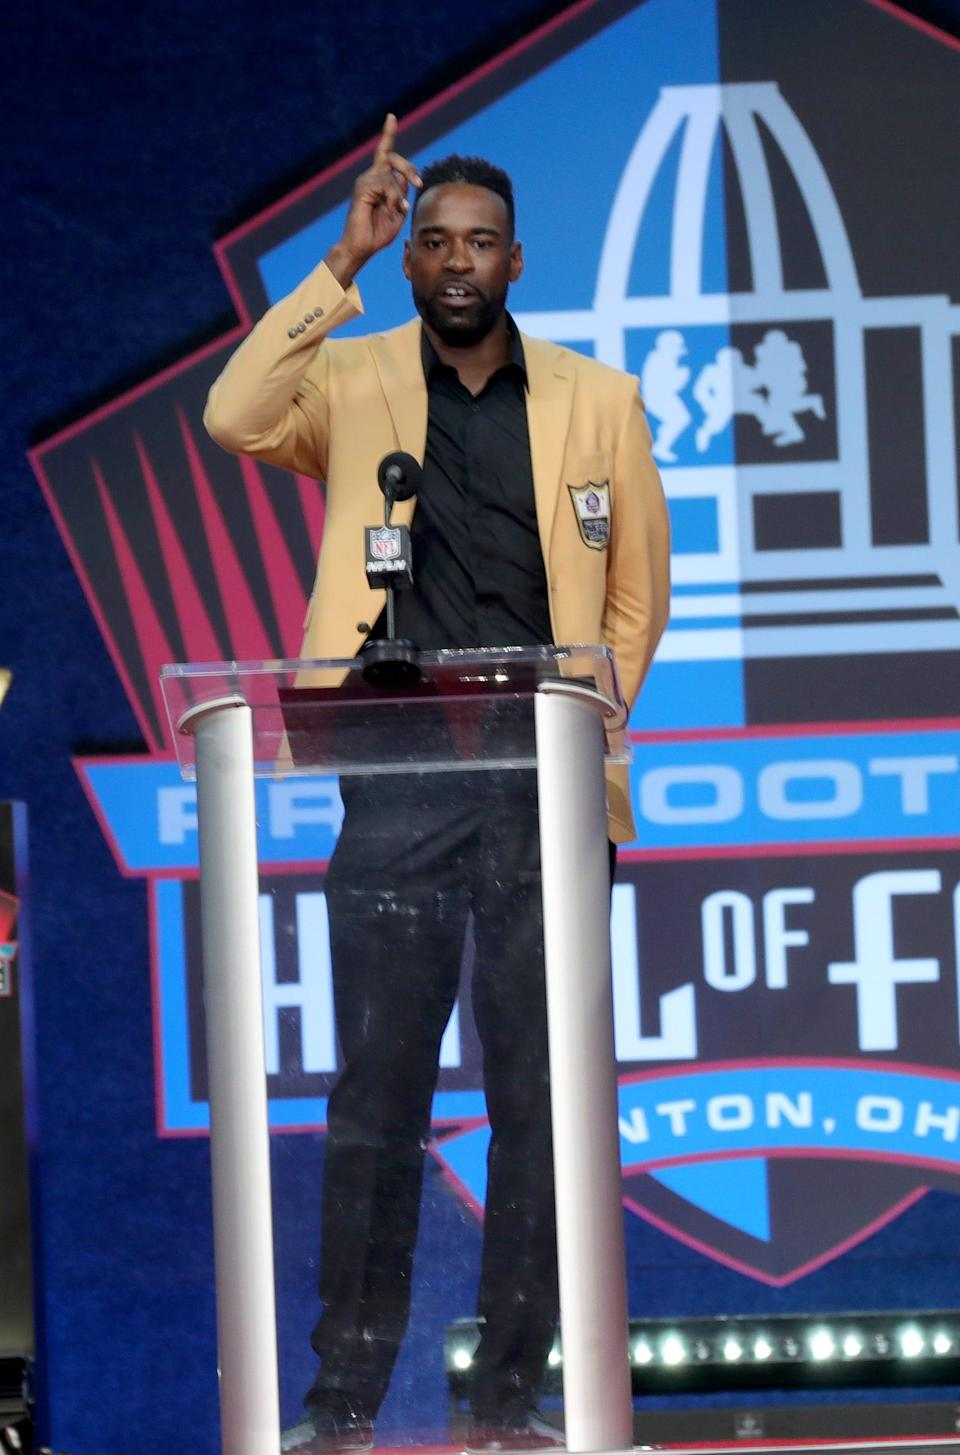 Former Detroit Lion Calvin Johnson gives his speech during the Pro Football Hall of Fame enshrinement ceremony Sunday, Aug. 8, 2021 at Tom Benson Hall of Fame Stadium in Canton, Ohio.